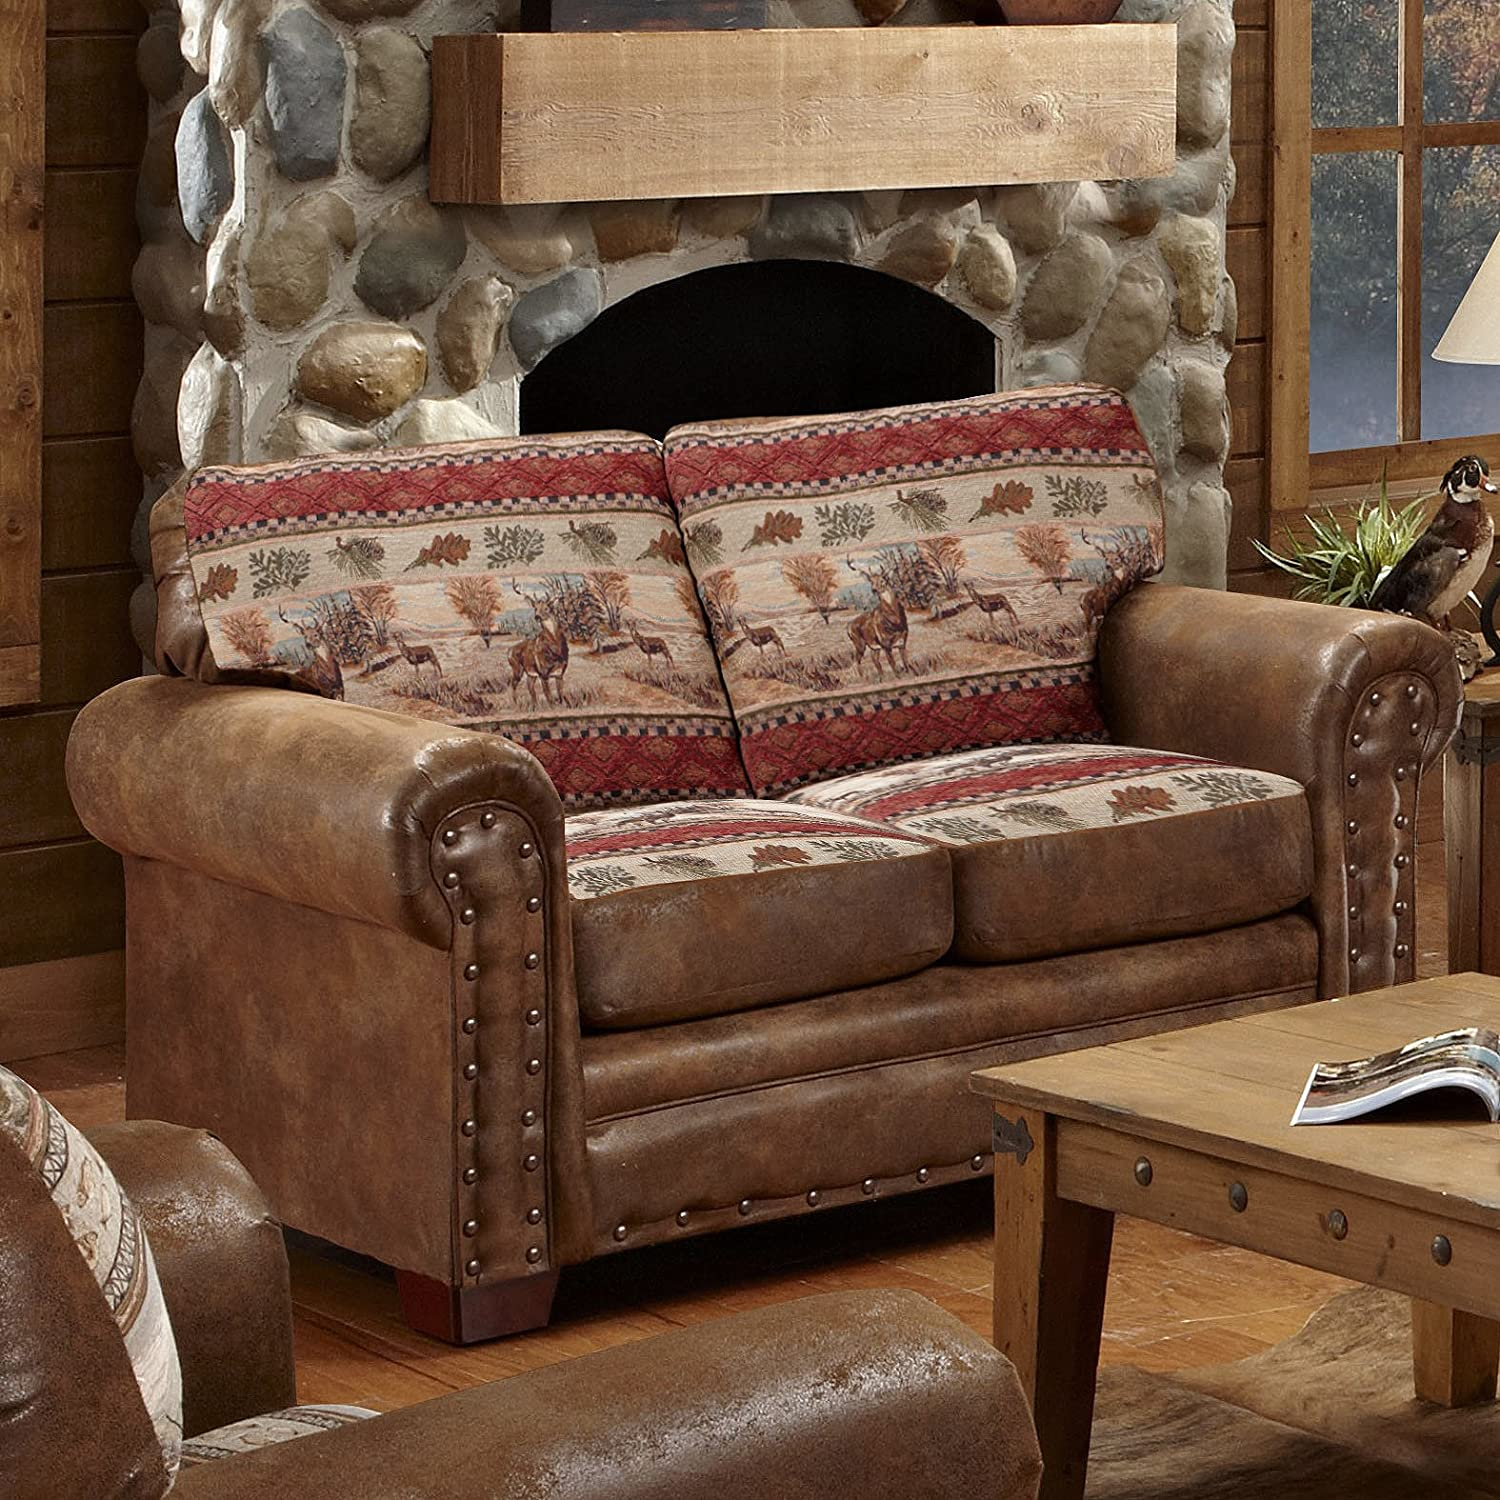 American Furniture Classics Deer Valley Love Seat